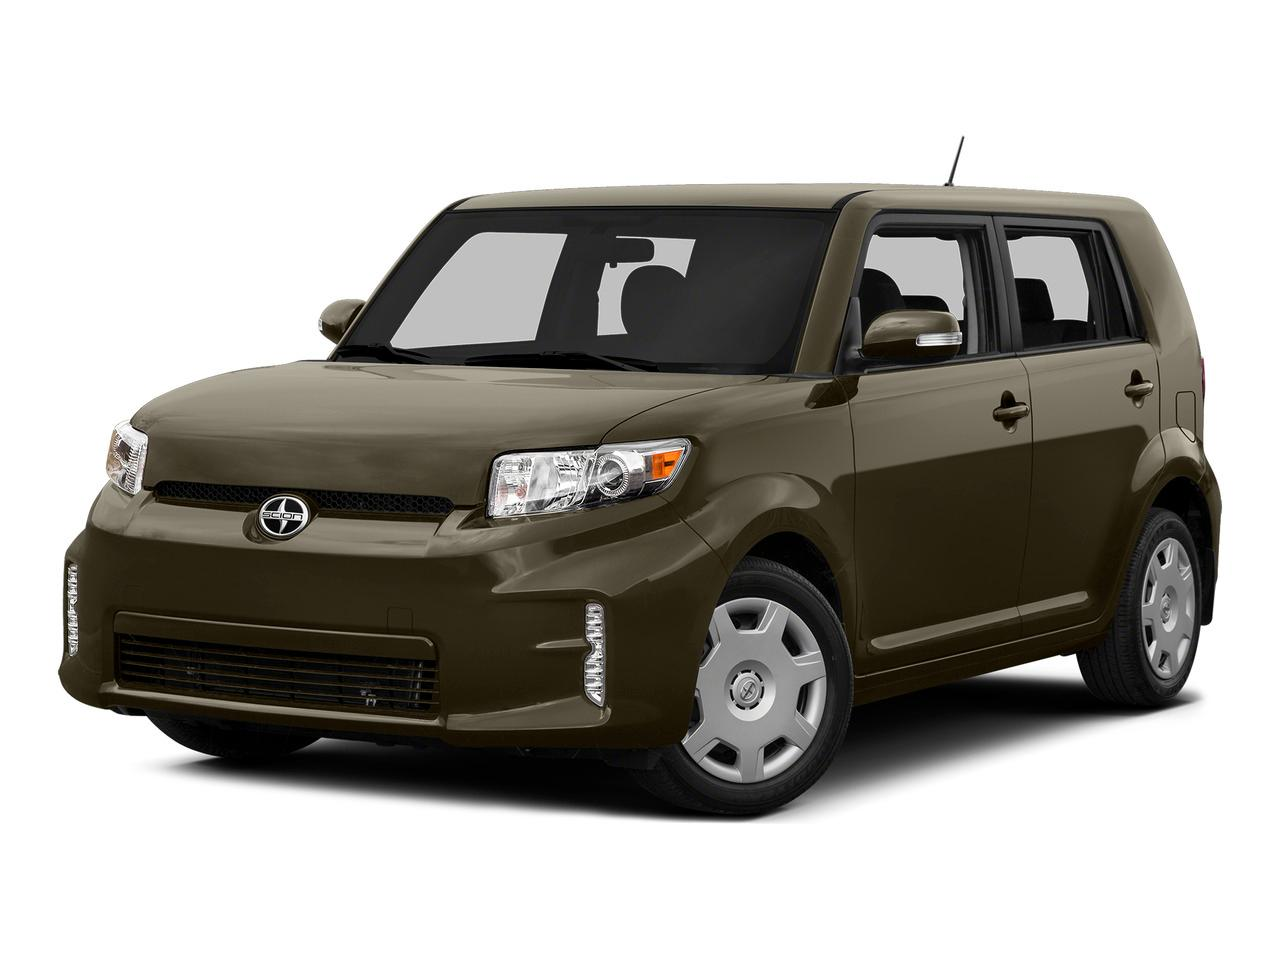 2015 Scion xB Vehicle Photo in Willoughby Hills, OH 44092